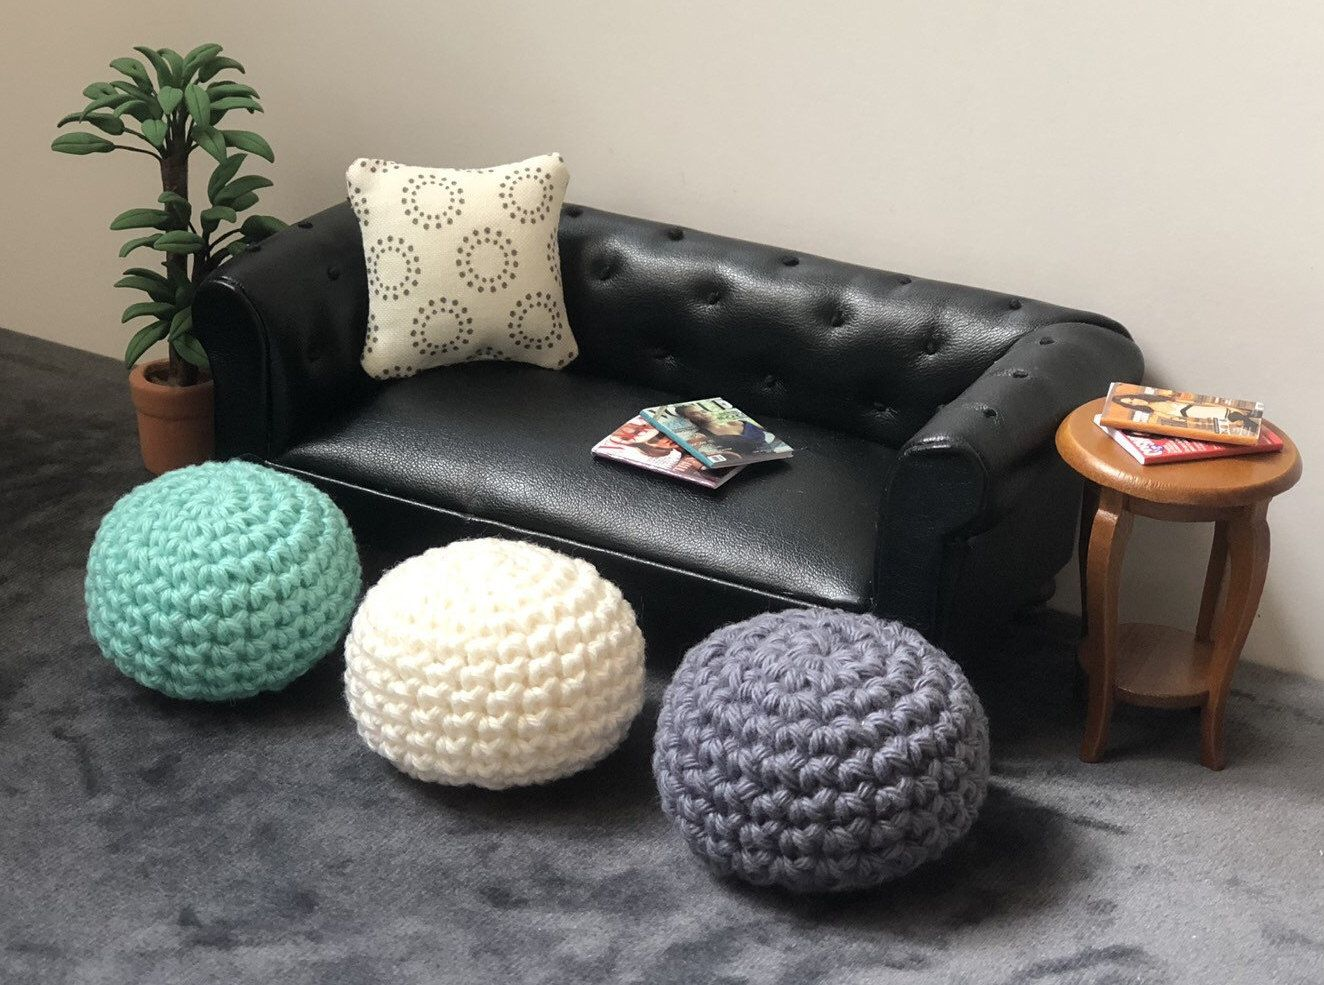 Handmade Ottoman 1 12 Scale Foot Rest 12th Scale Dollhouse Furniture Miniature Crochet Ottoman Modern Dollhouse Floor Pouf In 2020 Floor Pouf Dollhouse Furniture Ottoman